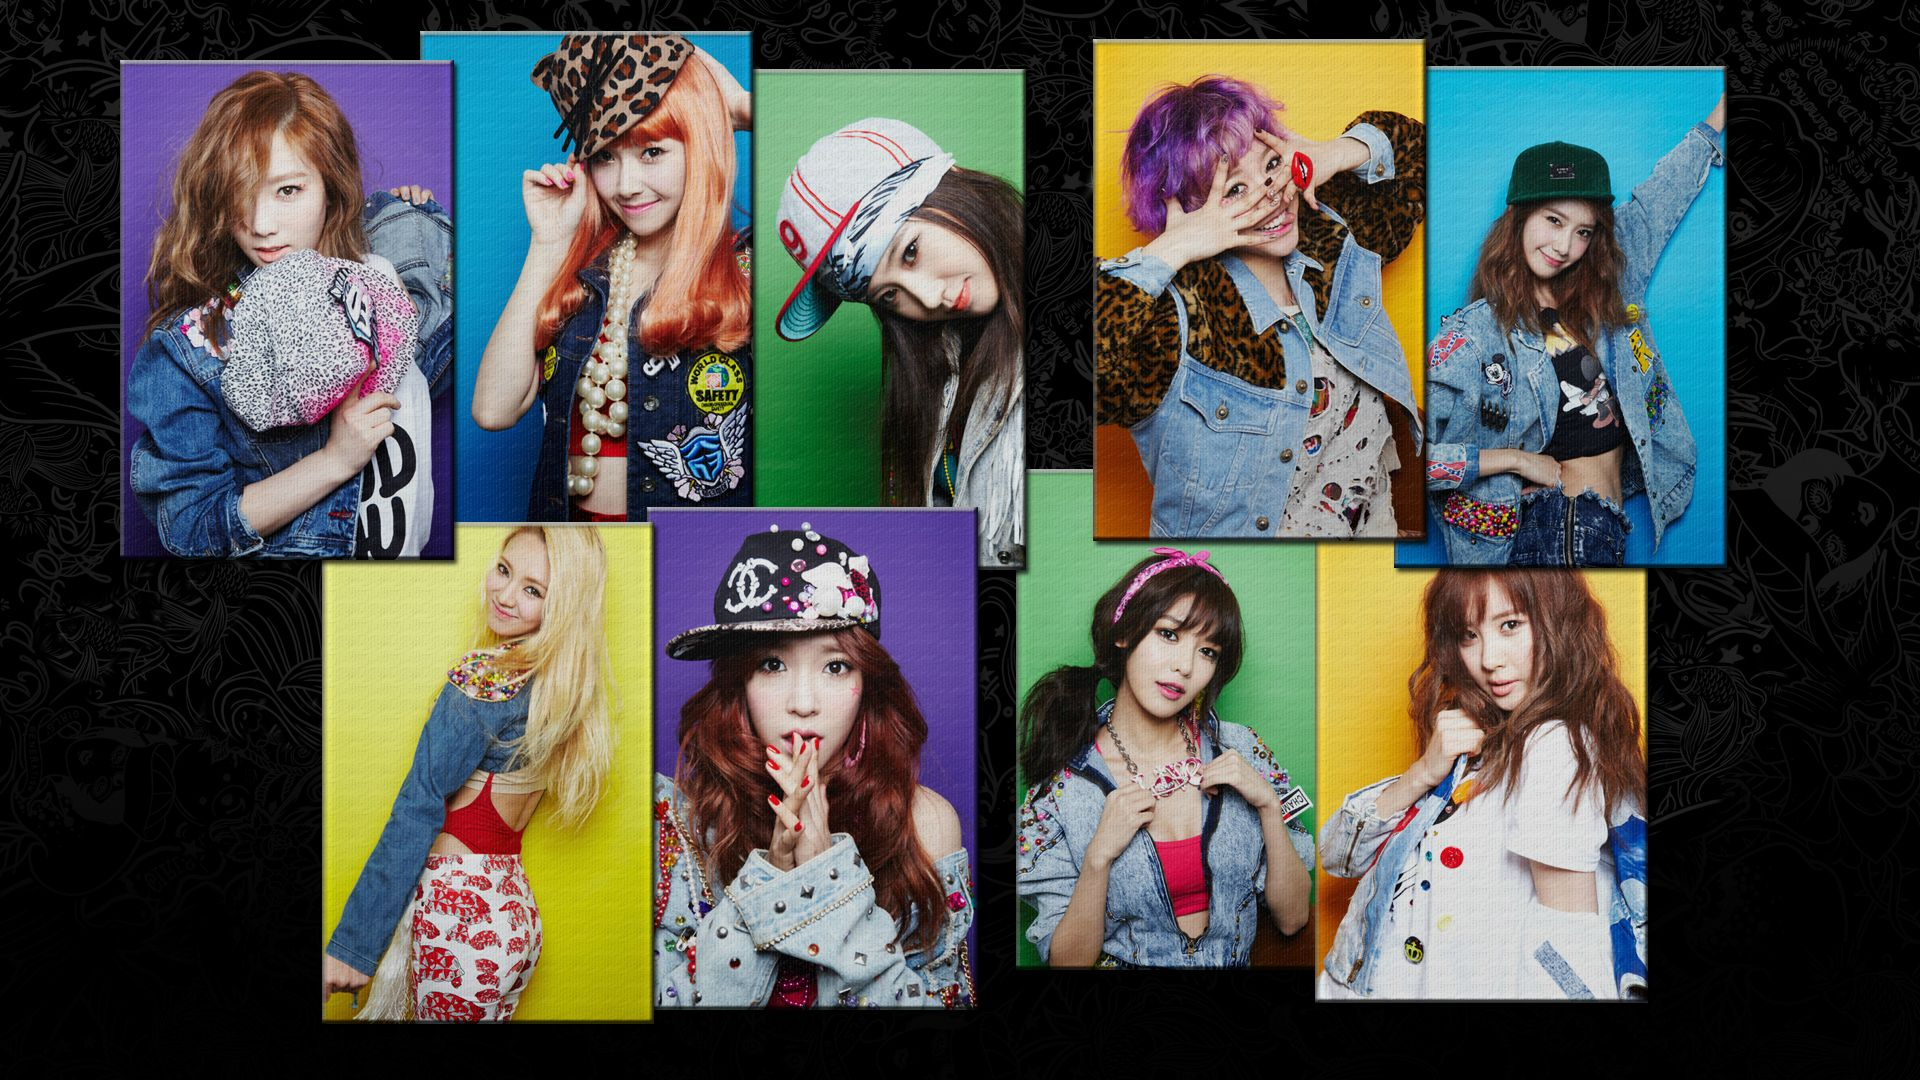 Kpop Wallpaper For Desktop Kpop Wallpaper For Desktop to 1920x1080